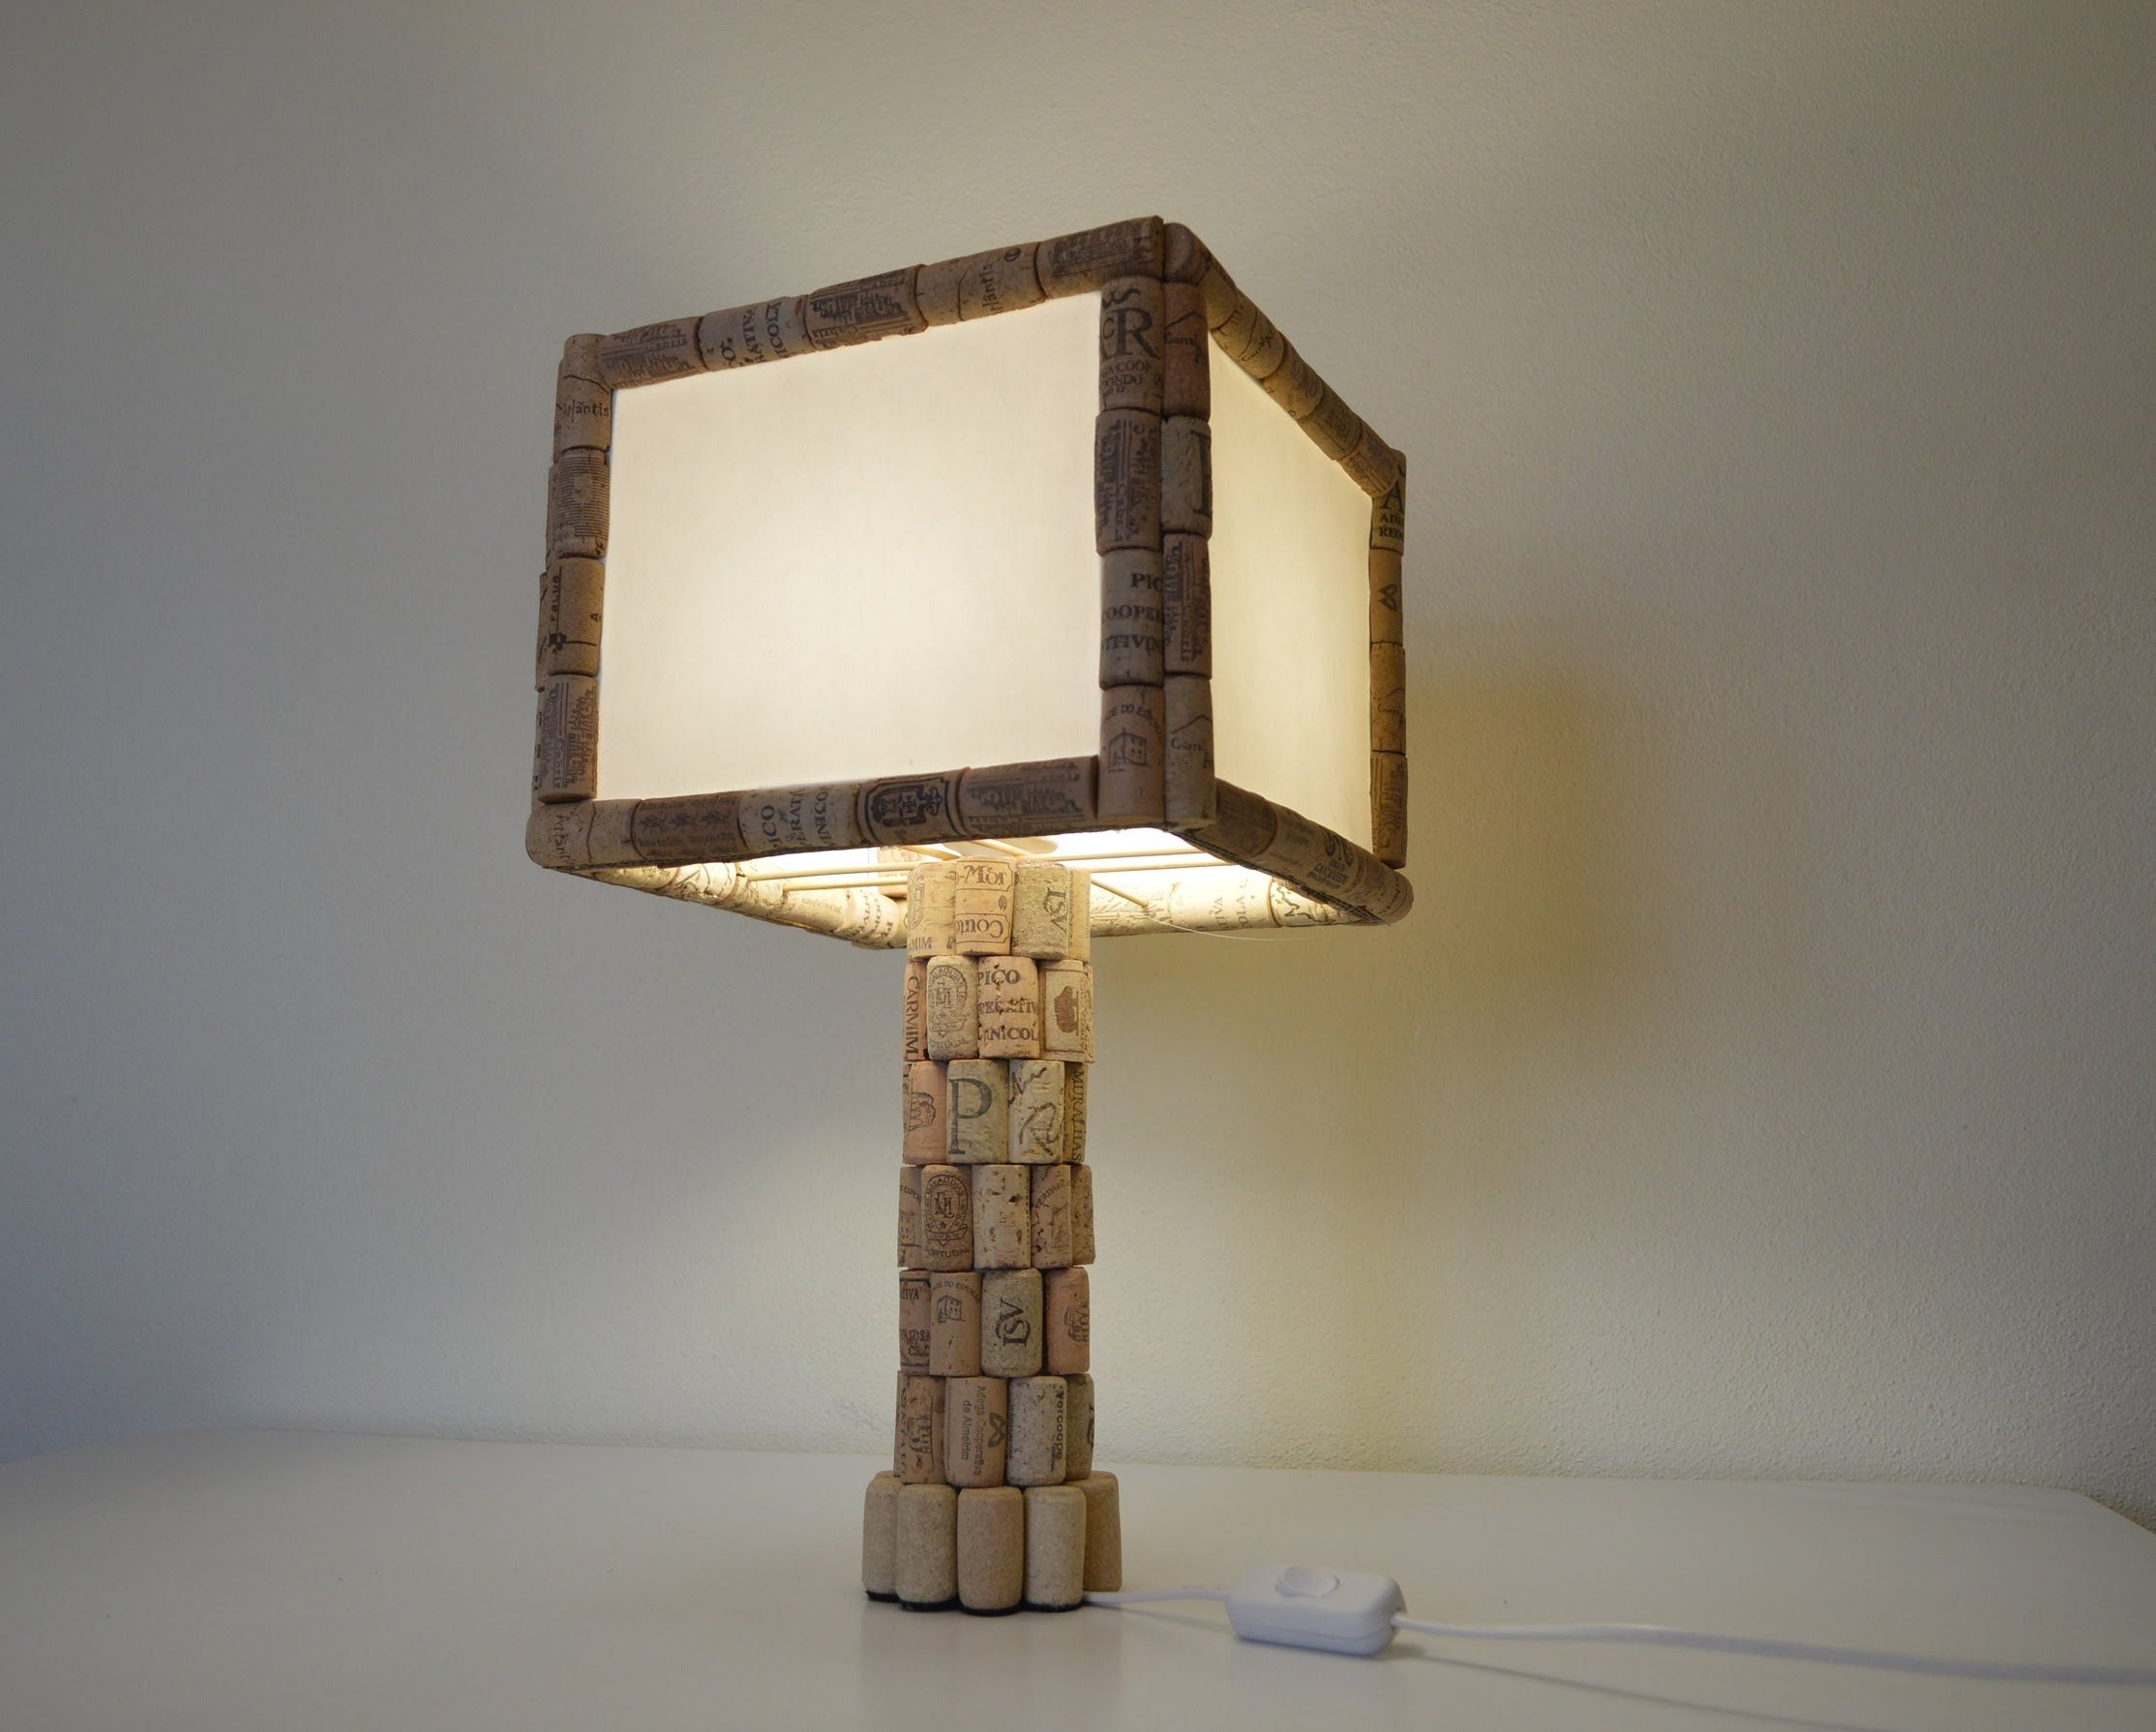 Como Hacer Una Lampara Como Hacer Una Lampara De Mesa Con Corcho How To Make Table Lamp